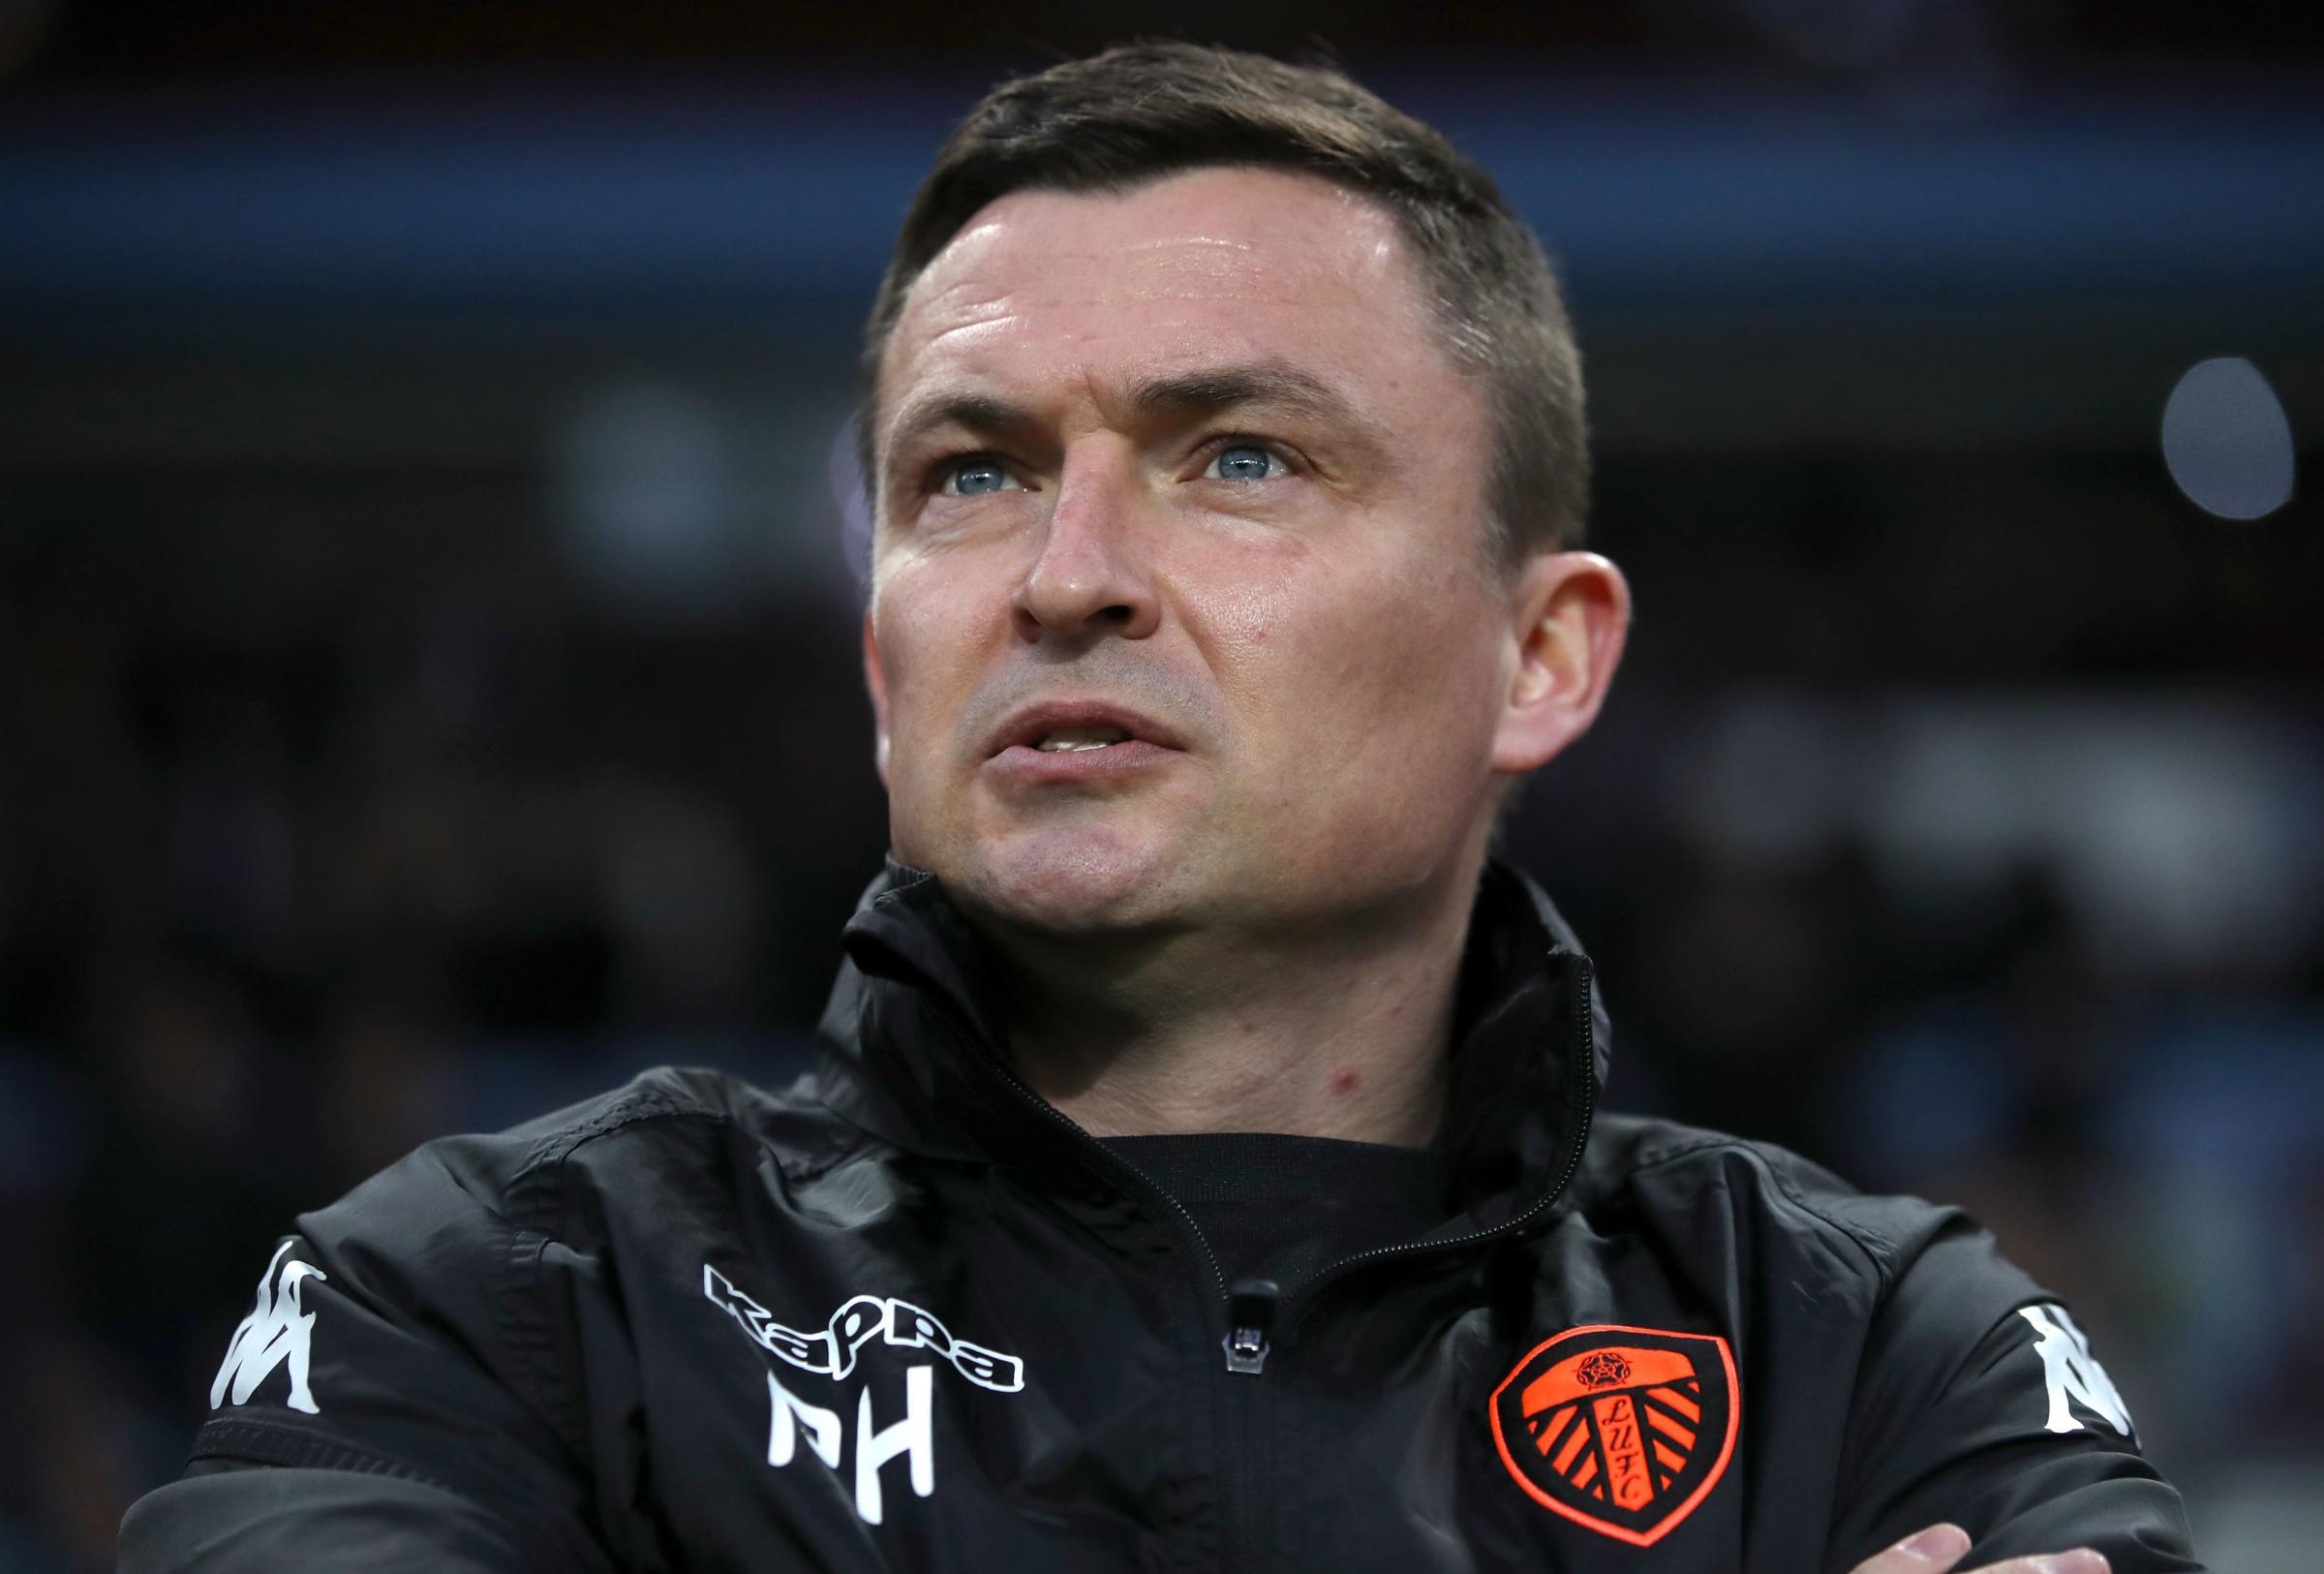 File photo dated 13-04-2018 of Leeds United manager Paul Heckingbottom during the Sky Bet Championship match at Villa Park, Birmingham. PRESS ASSOCIATION Photo. Issue date: Friday June 1, 2018 Leeds have sacked Paul Heckingbottom from his